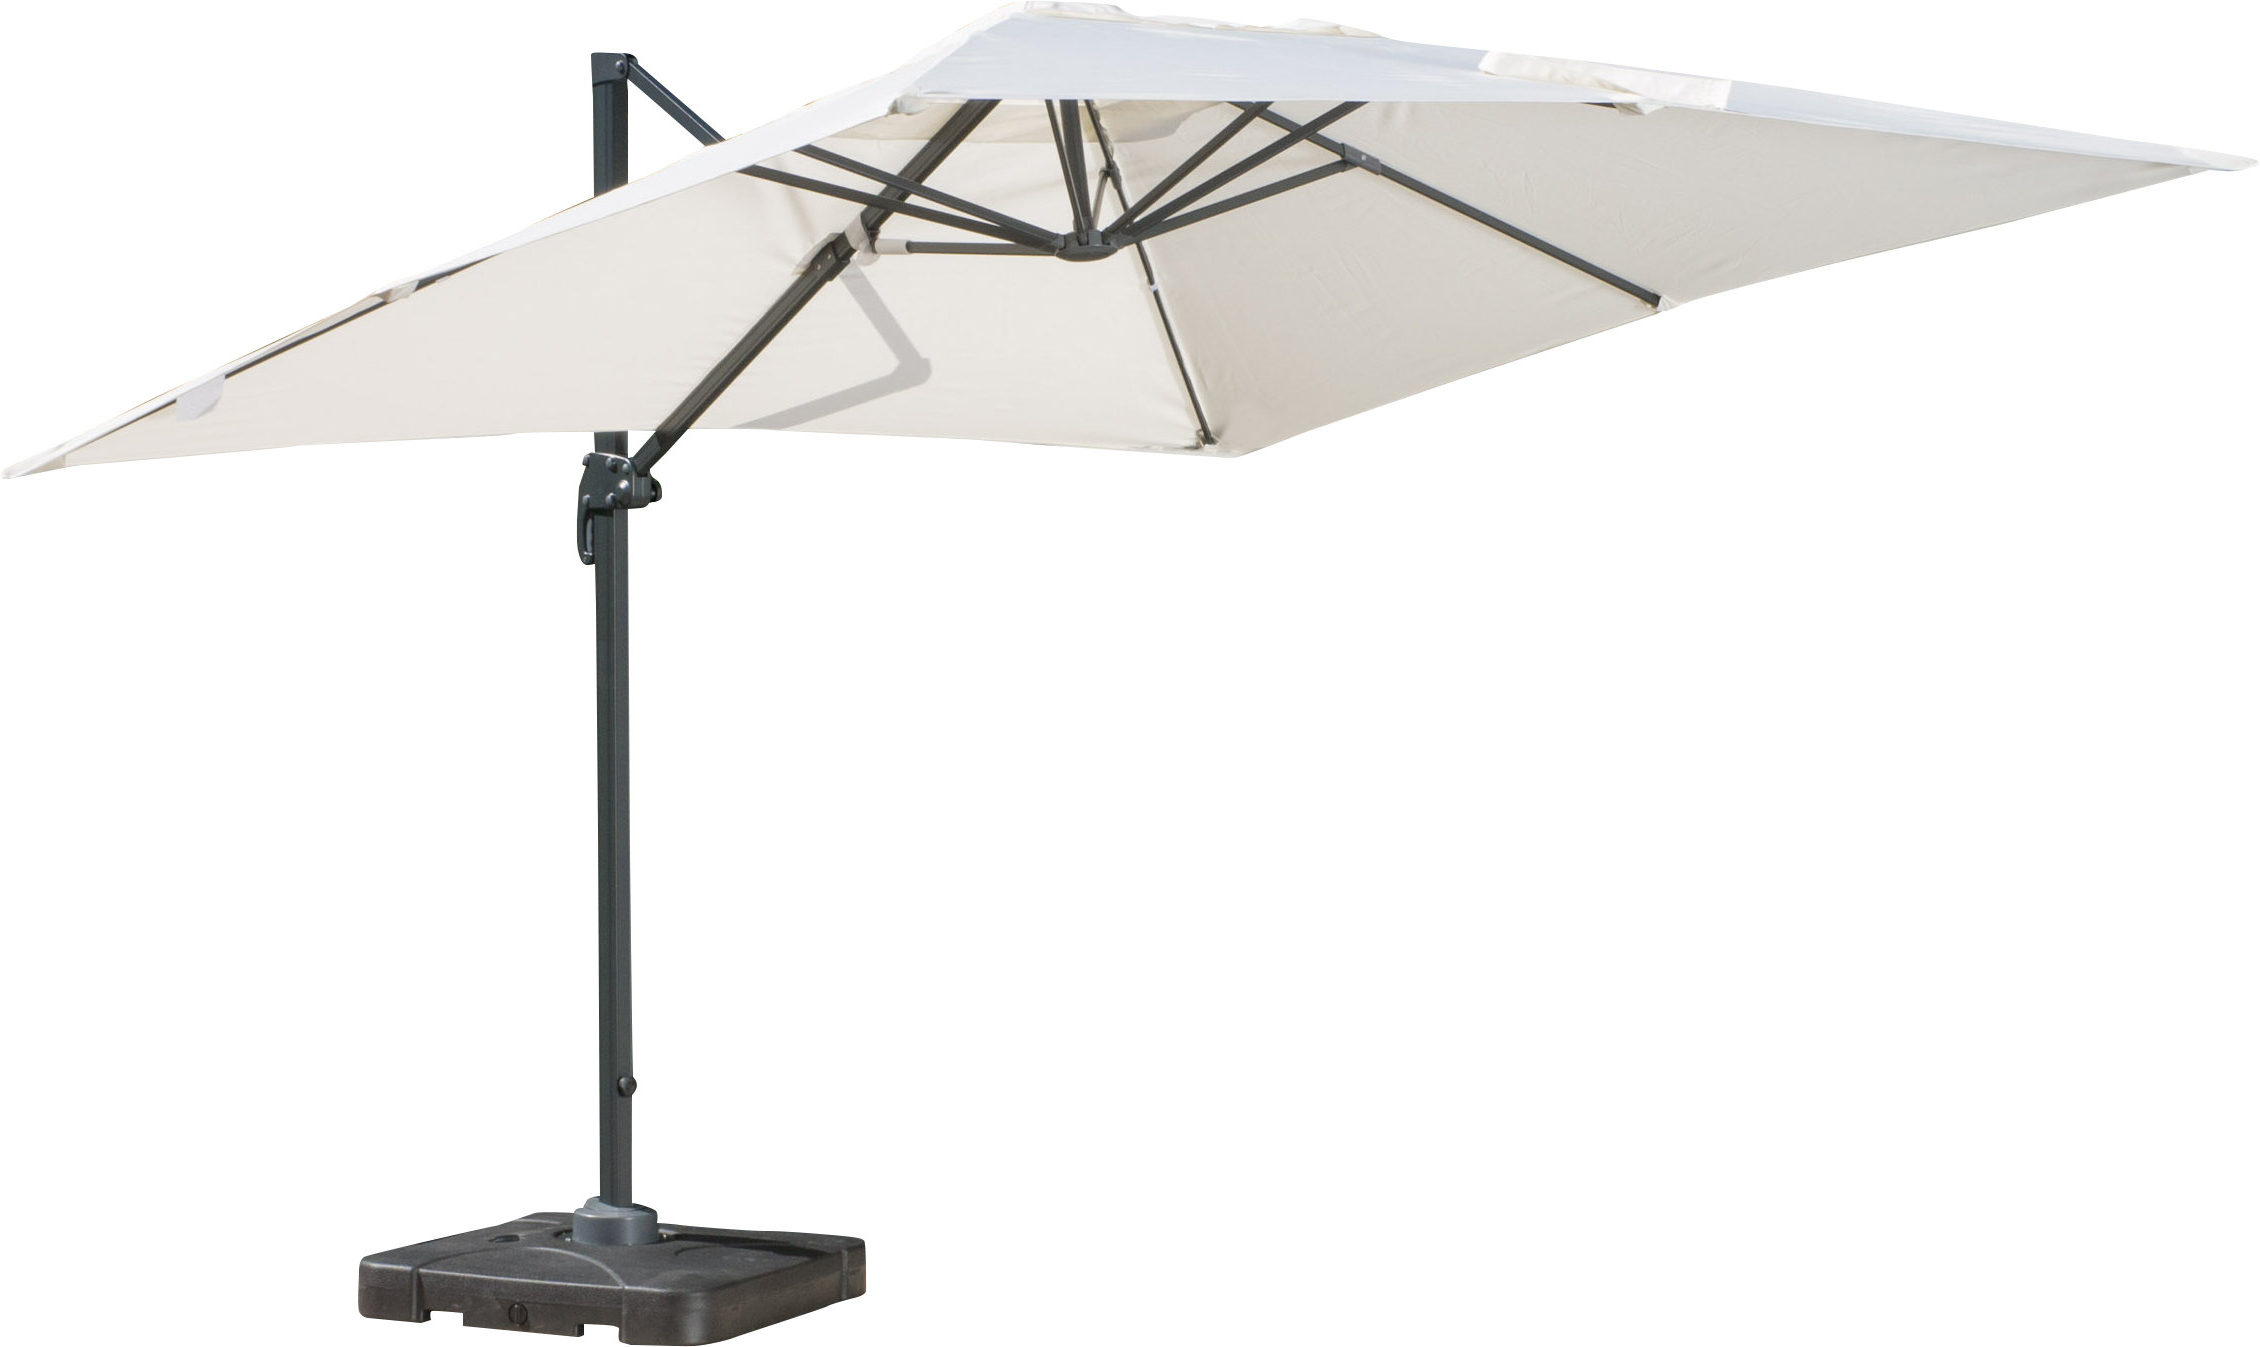 Well Known Boracay 10' Square Cantilever Umbrella Pertaining To Boracay Square Cantilever Umbrellas (View 20 of 20)